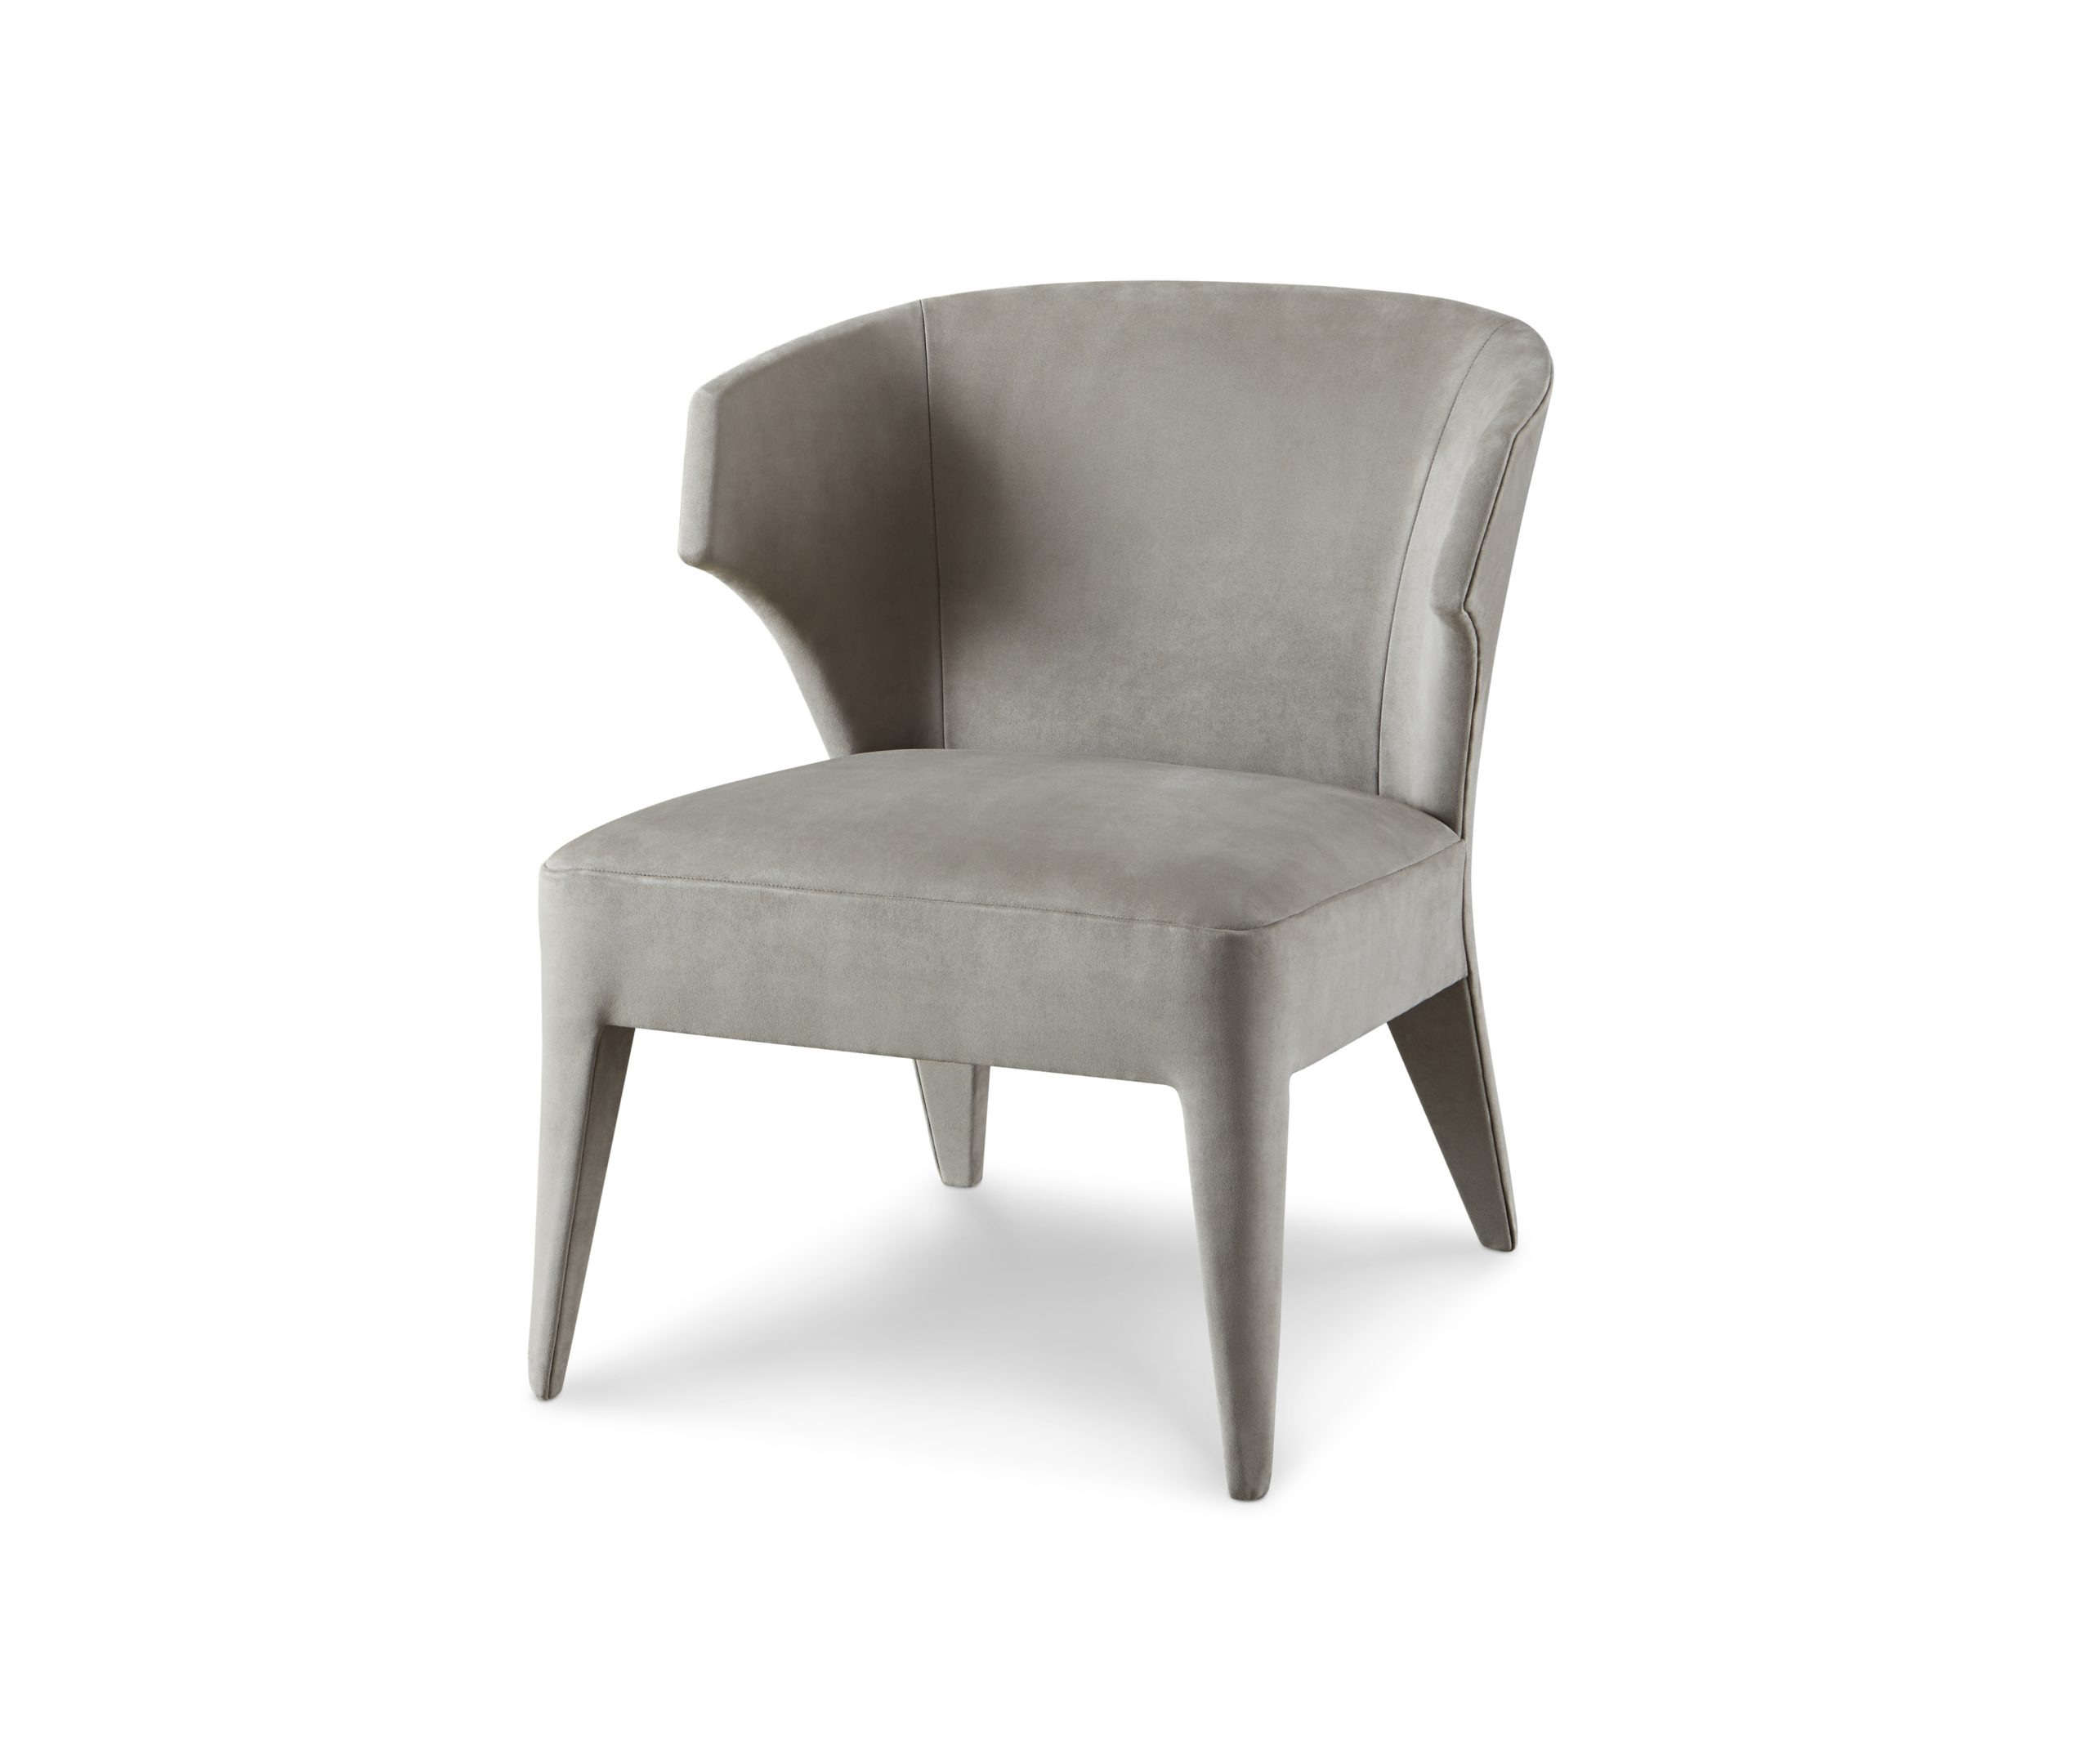 Baker_products_WNWN_lapel_lounge_chair_BAU3101c_FRONT_3QRT-scaled-2